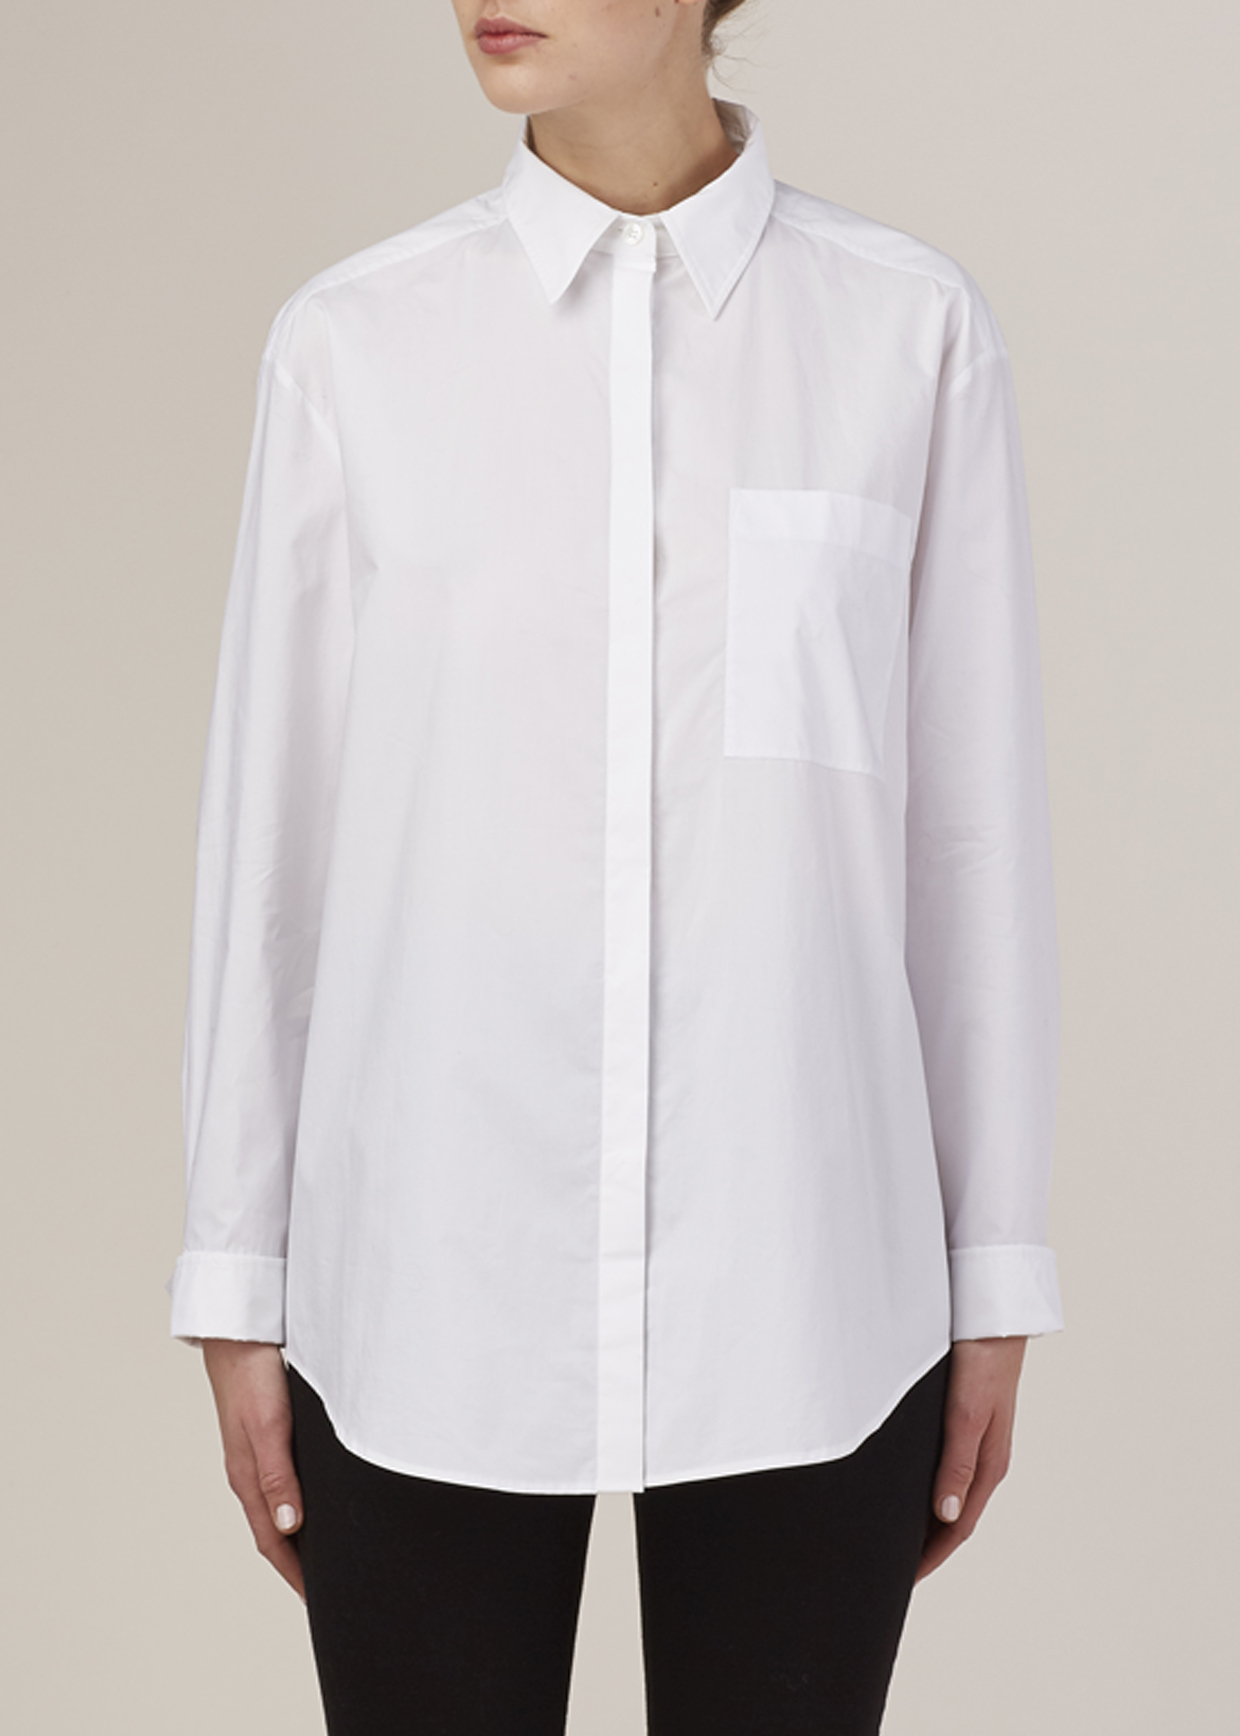 Acne Optic White Addle Tech Pop Shirt